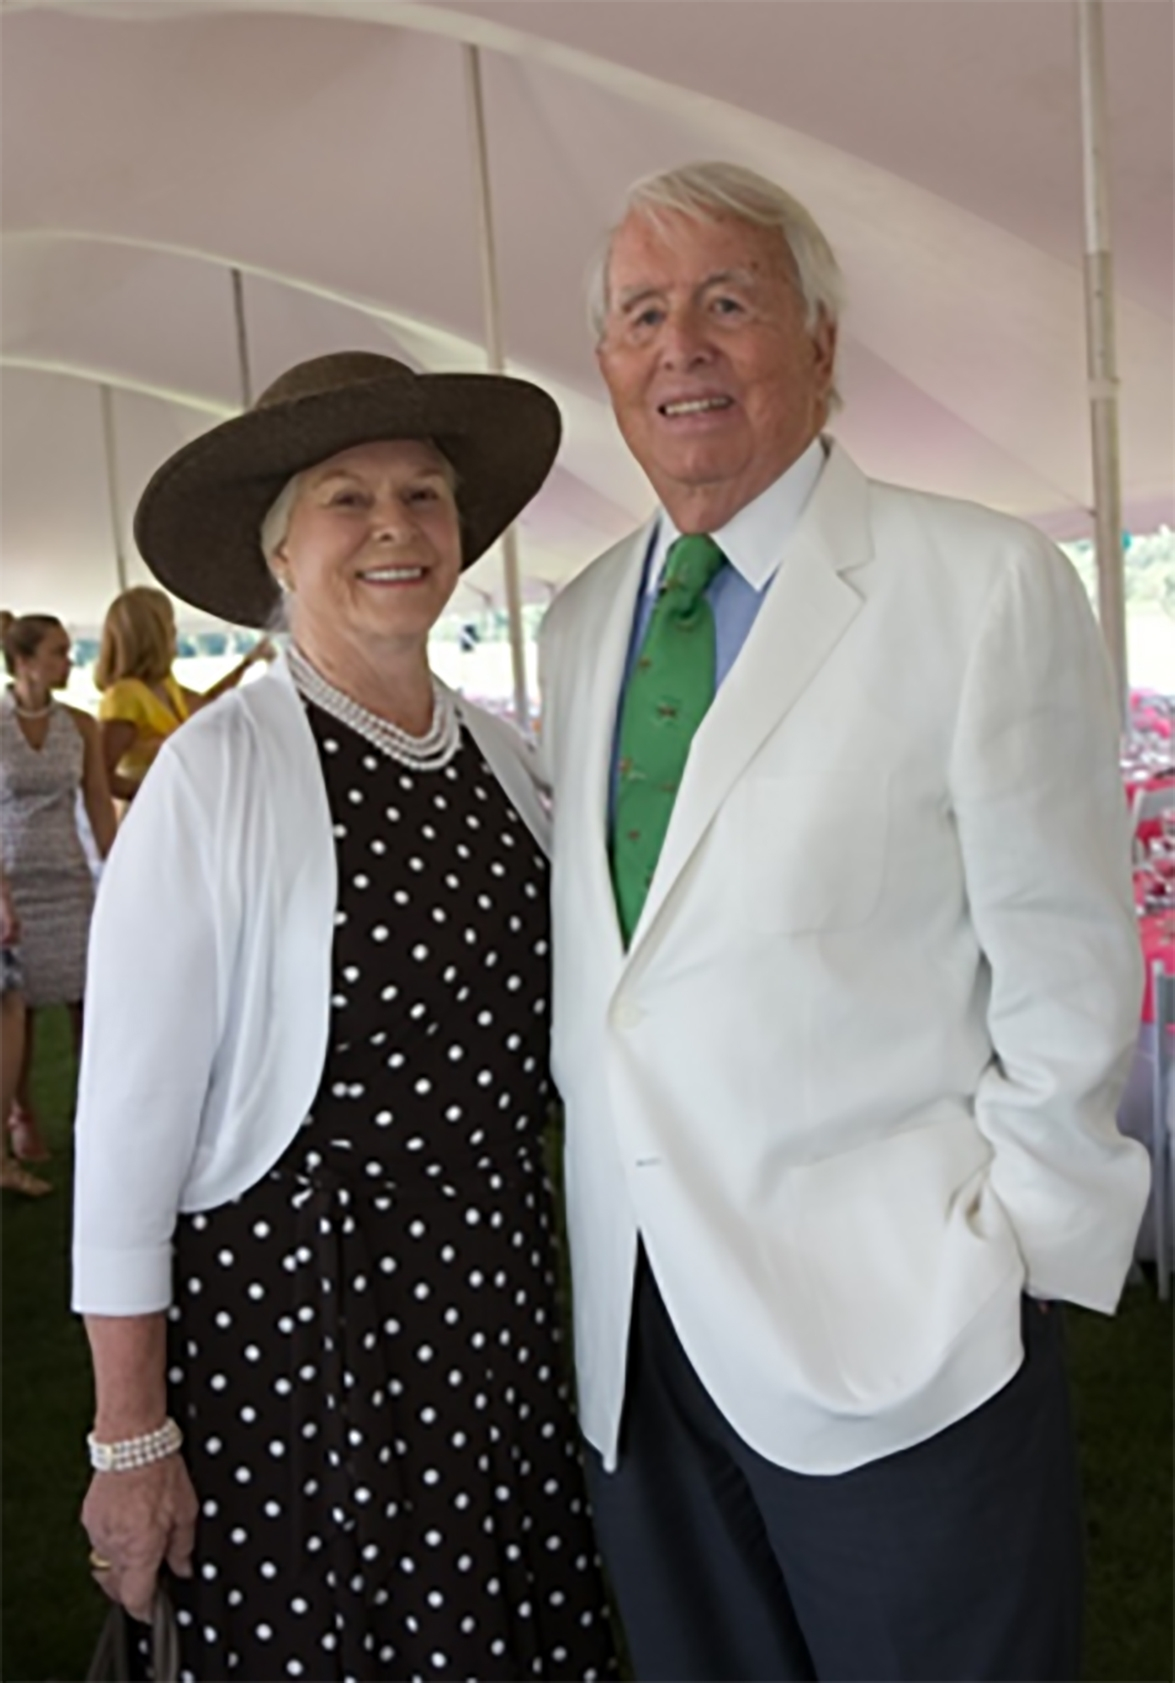 ec2513f25f7e8702120c_Lois-and-Eugene-Colley__4_.jpg